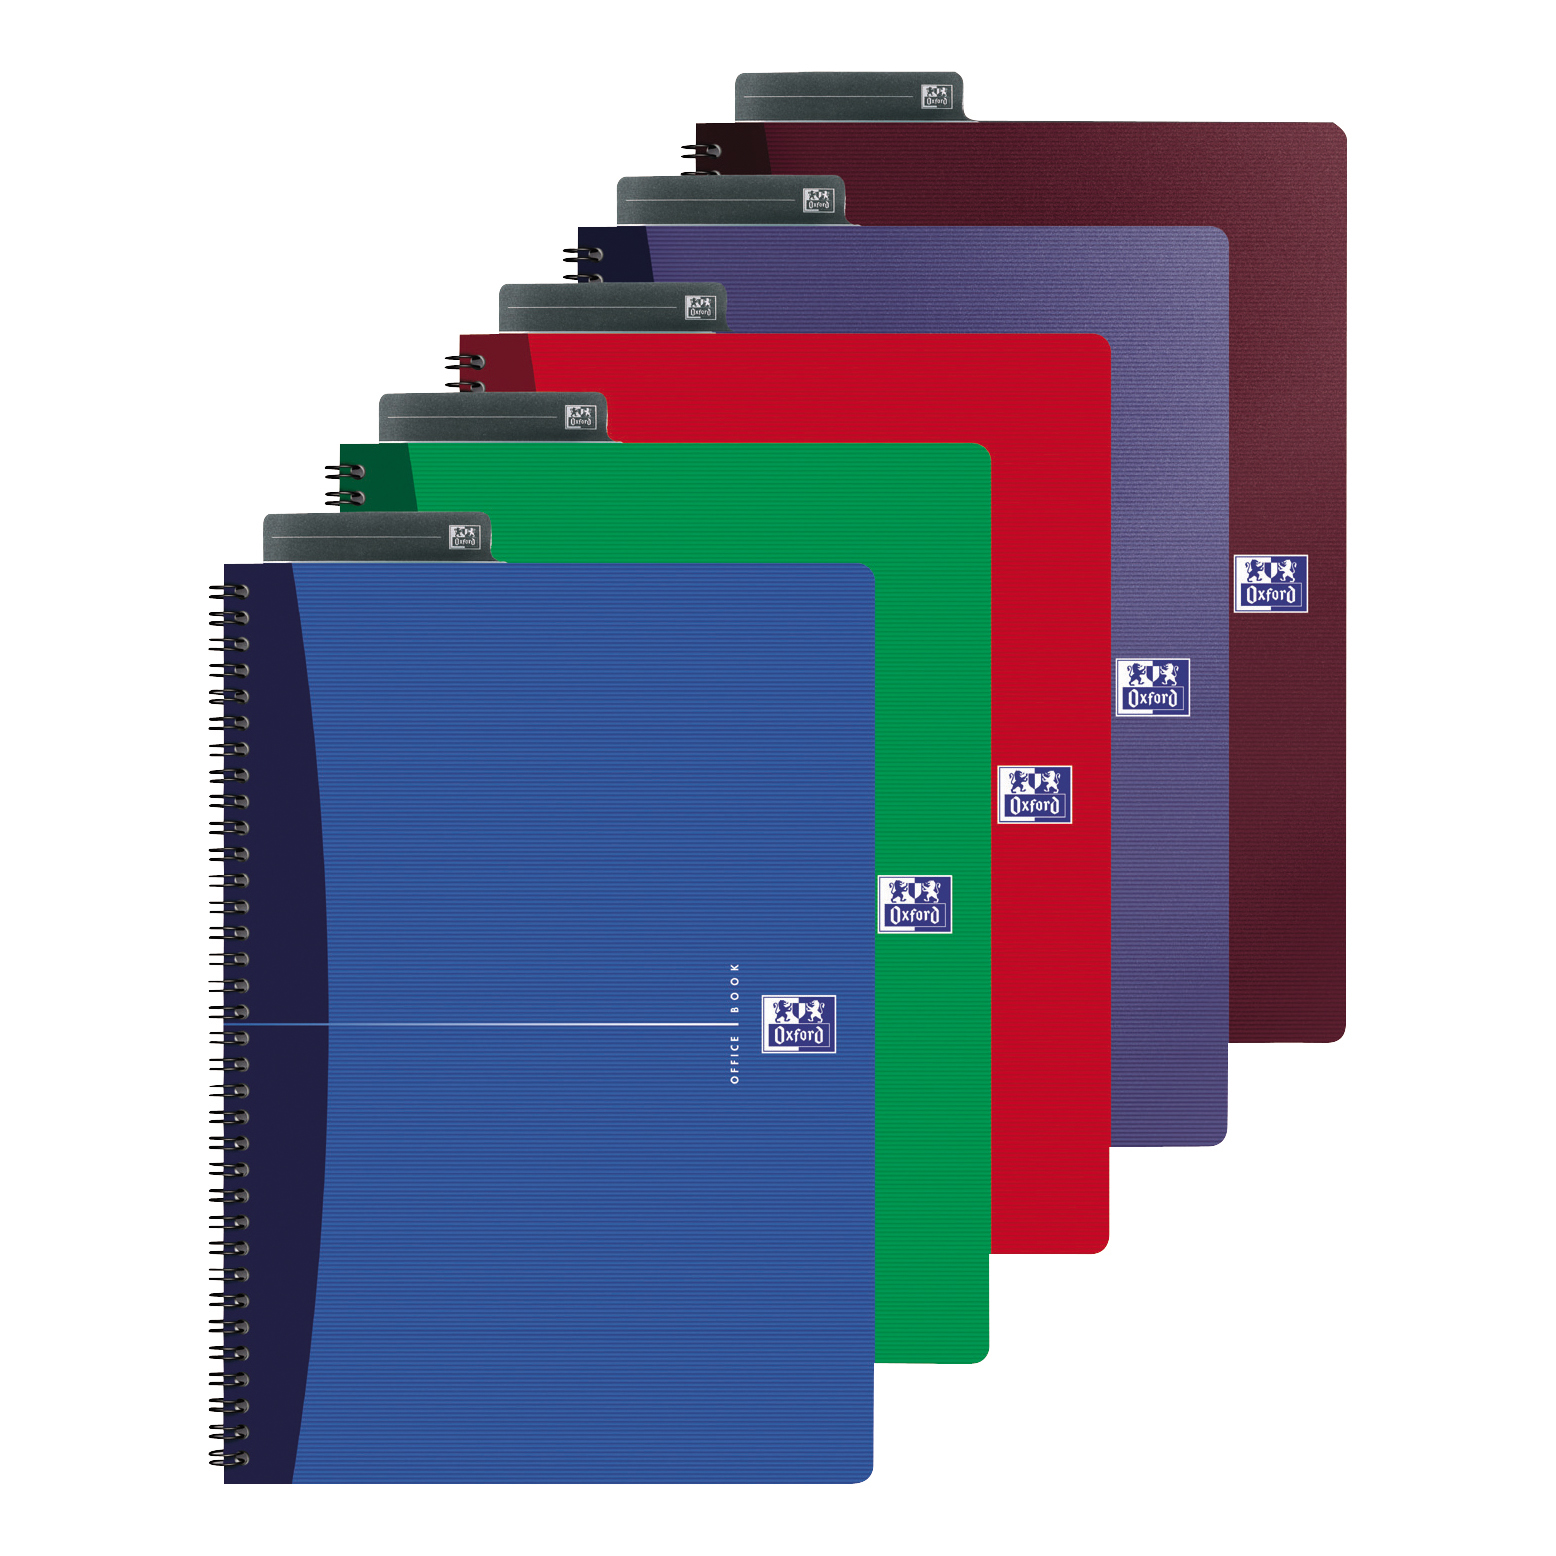 Oxford Office Nbk Wirebound Soft Cover 90gsm Smart Ruled 180pp A5 Assorted Colour Ref 100103741 Pack 5